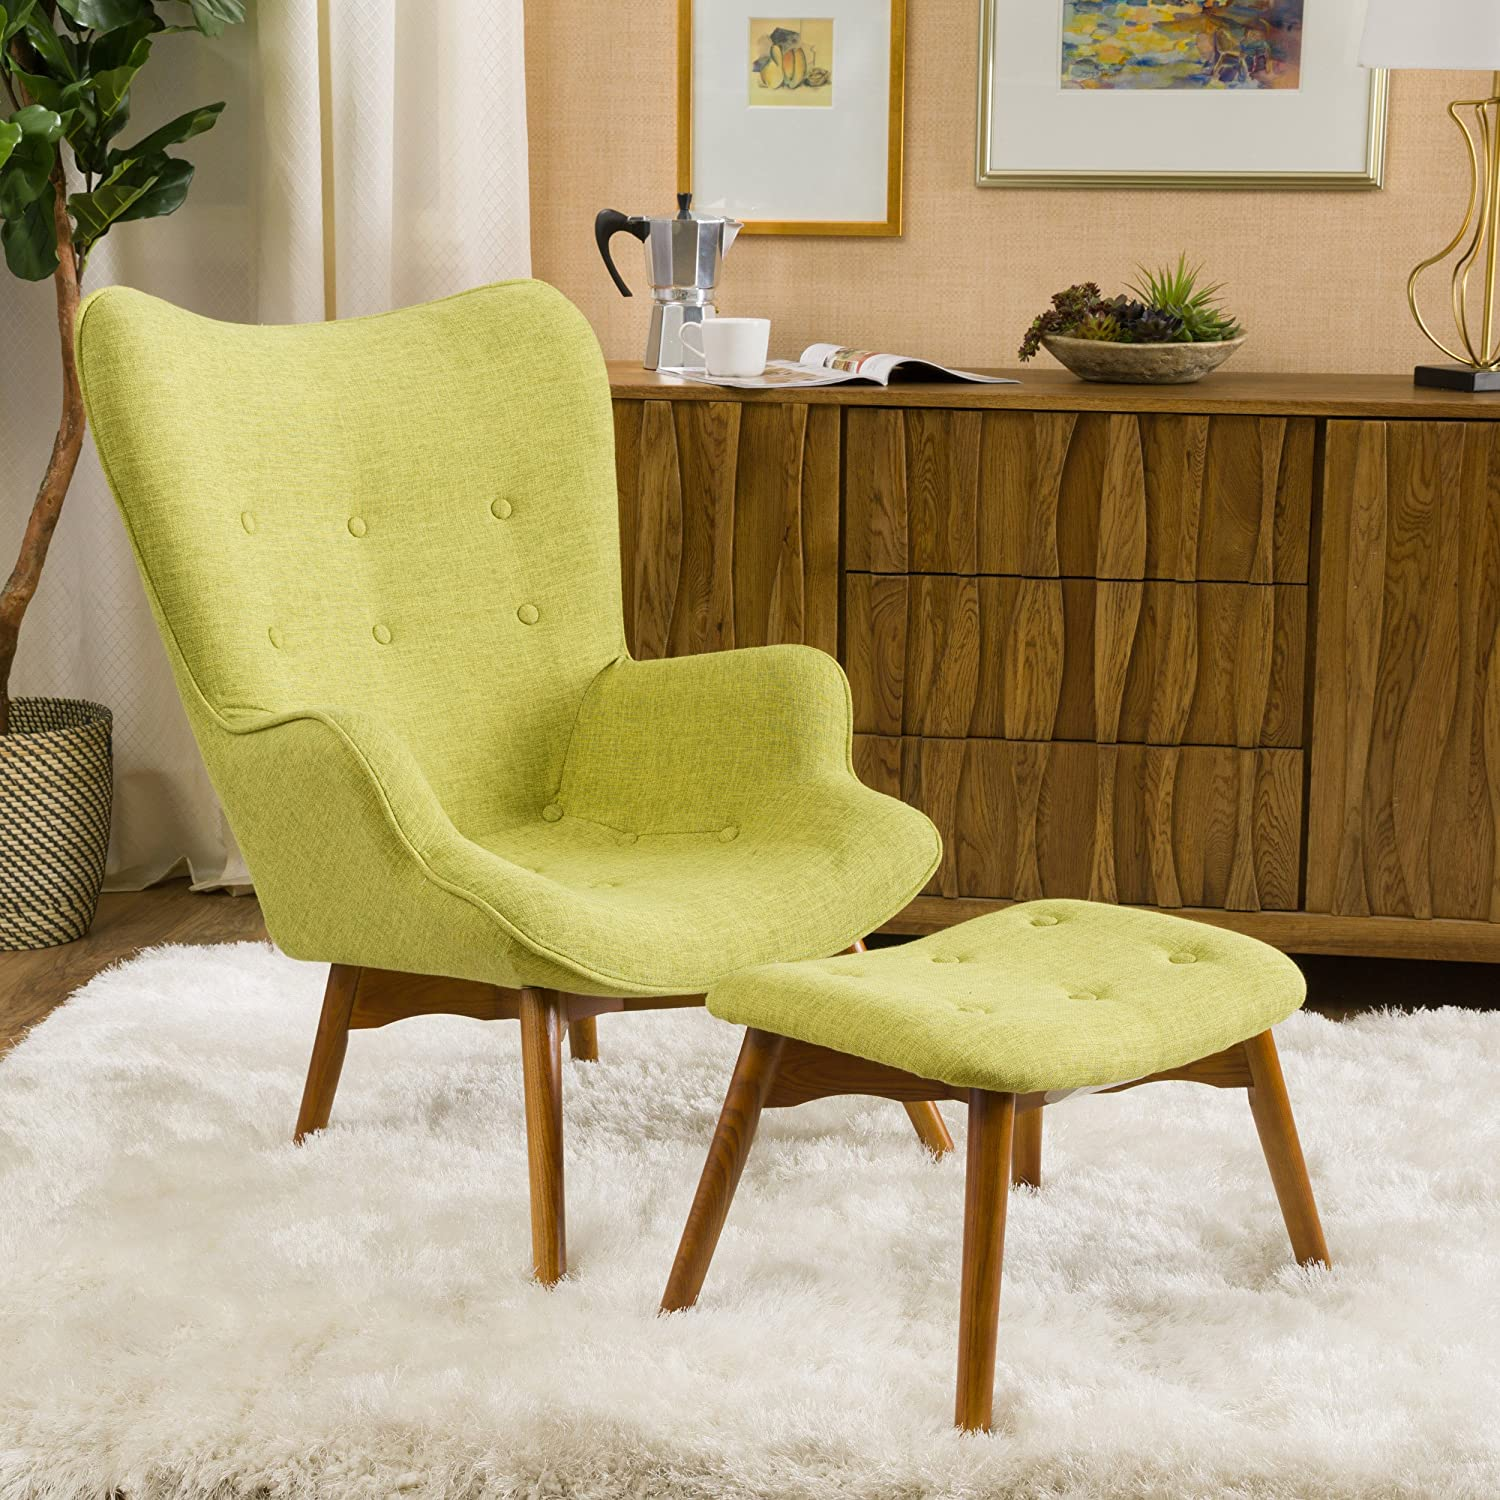 Amazon.com Acantha Mid Century Modern Retro Contour Chair with Footstool Kitchen u0026 Dining & Amazon.com: Acantha Mid Century Modern Retro Contour Chair with ...